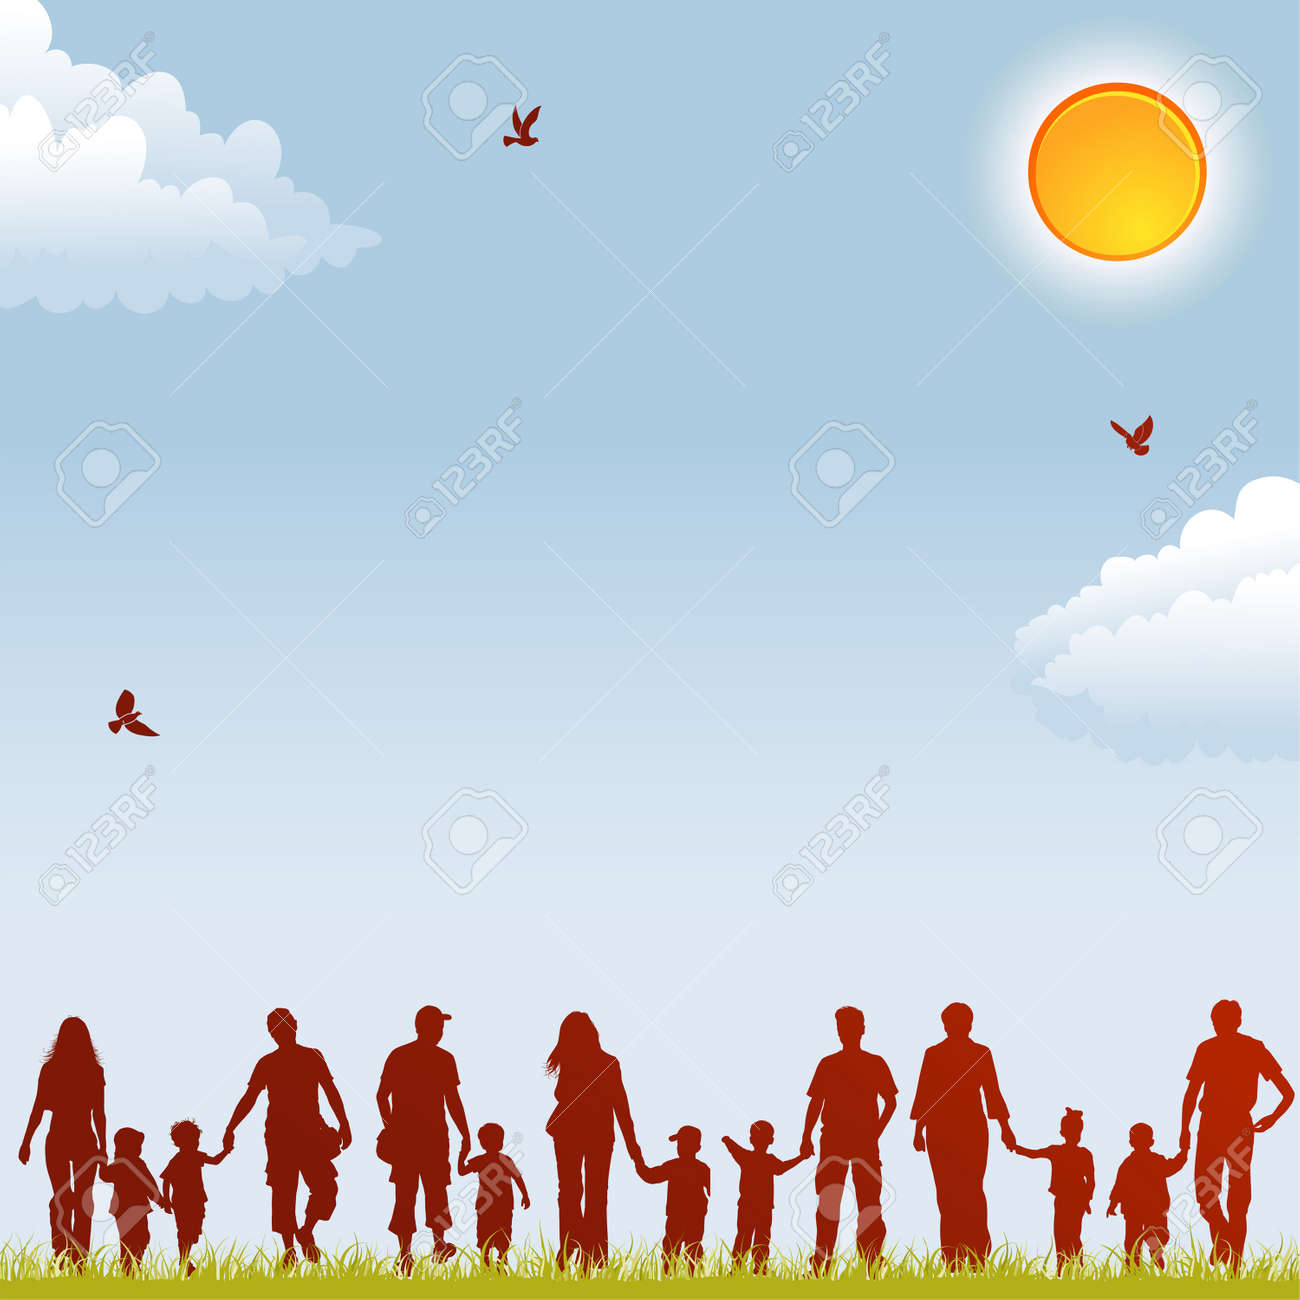 Silhouettes of family on nature background with bird, sun and grass, element for design, vector illustration Stock Vector - 9411603